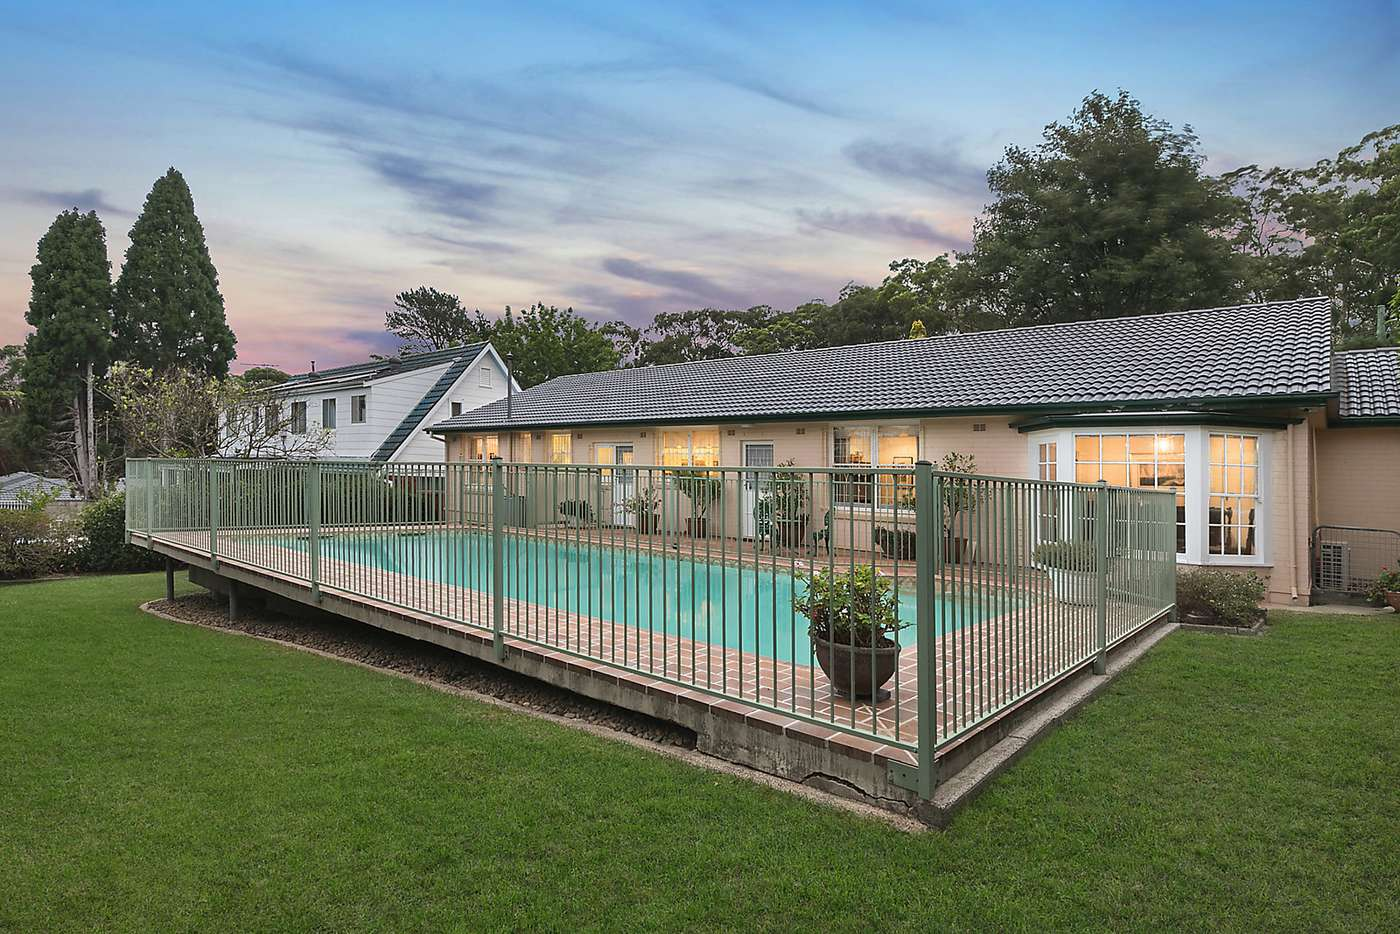 Main view of Homely house listing, 104 Yarrabung Road, St Ives NSW 2075